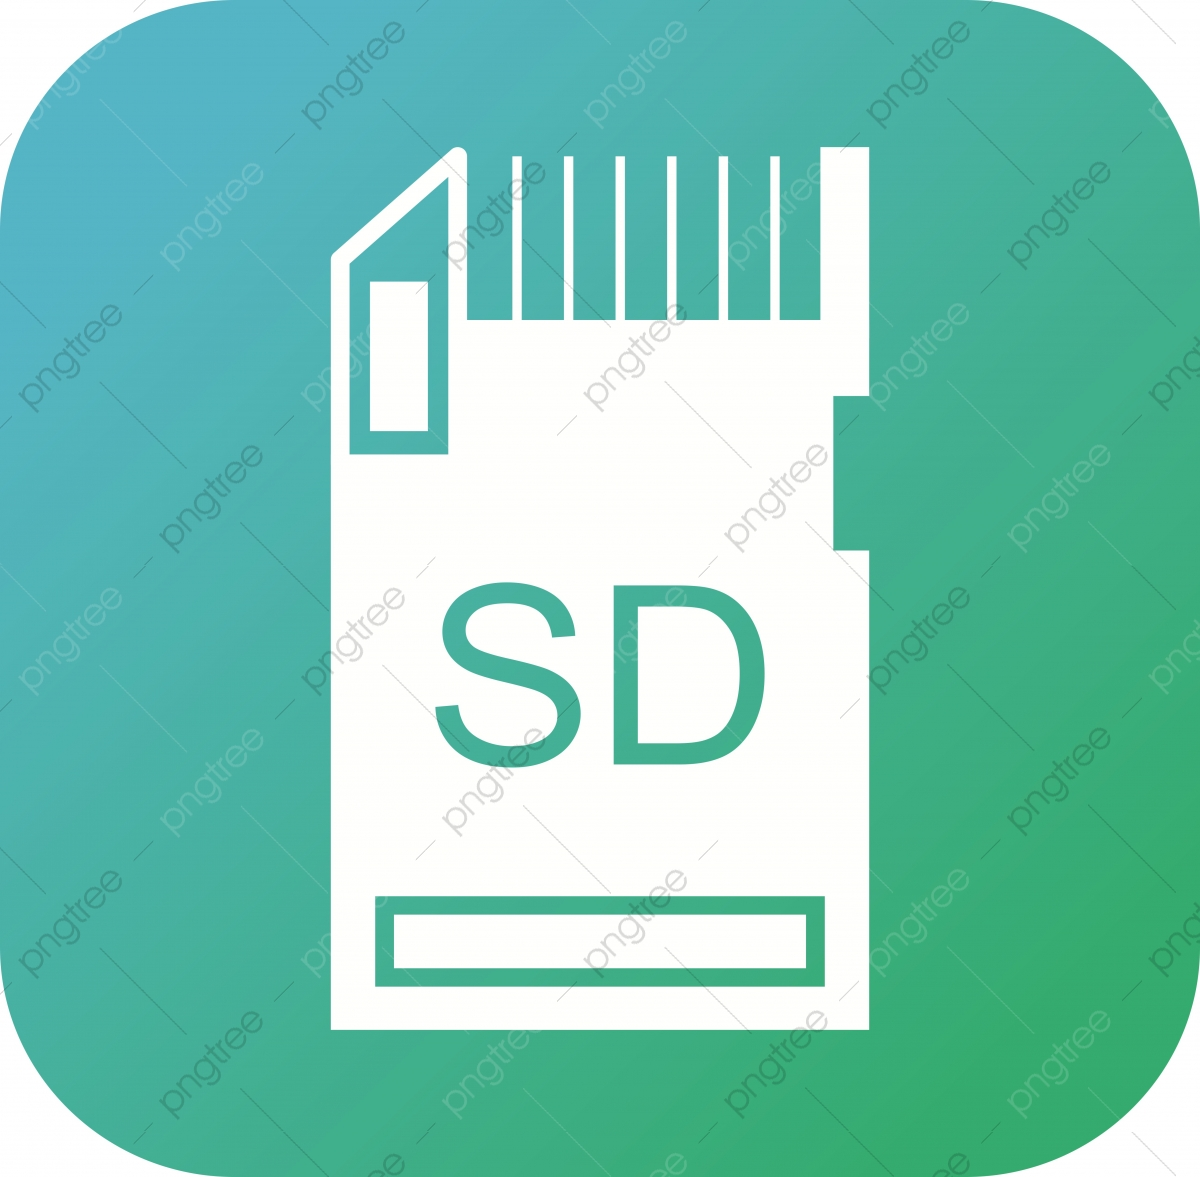 sd png images vector and psd files free download on pngtree https pngtree com freepng beautiful sd card vector glyph icon 5097742 html